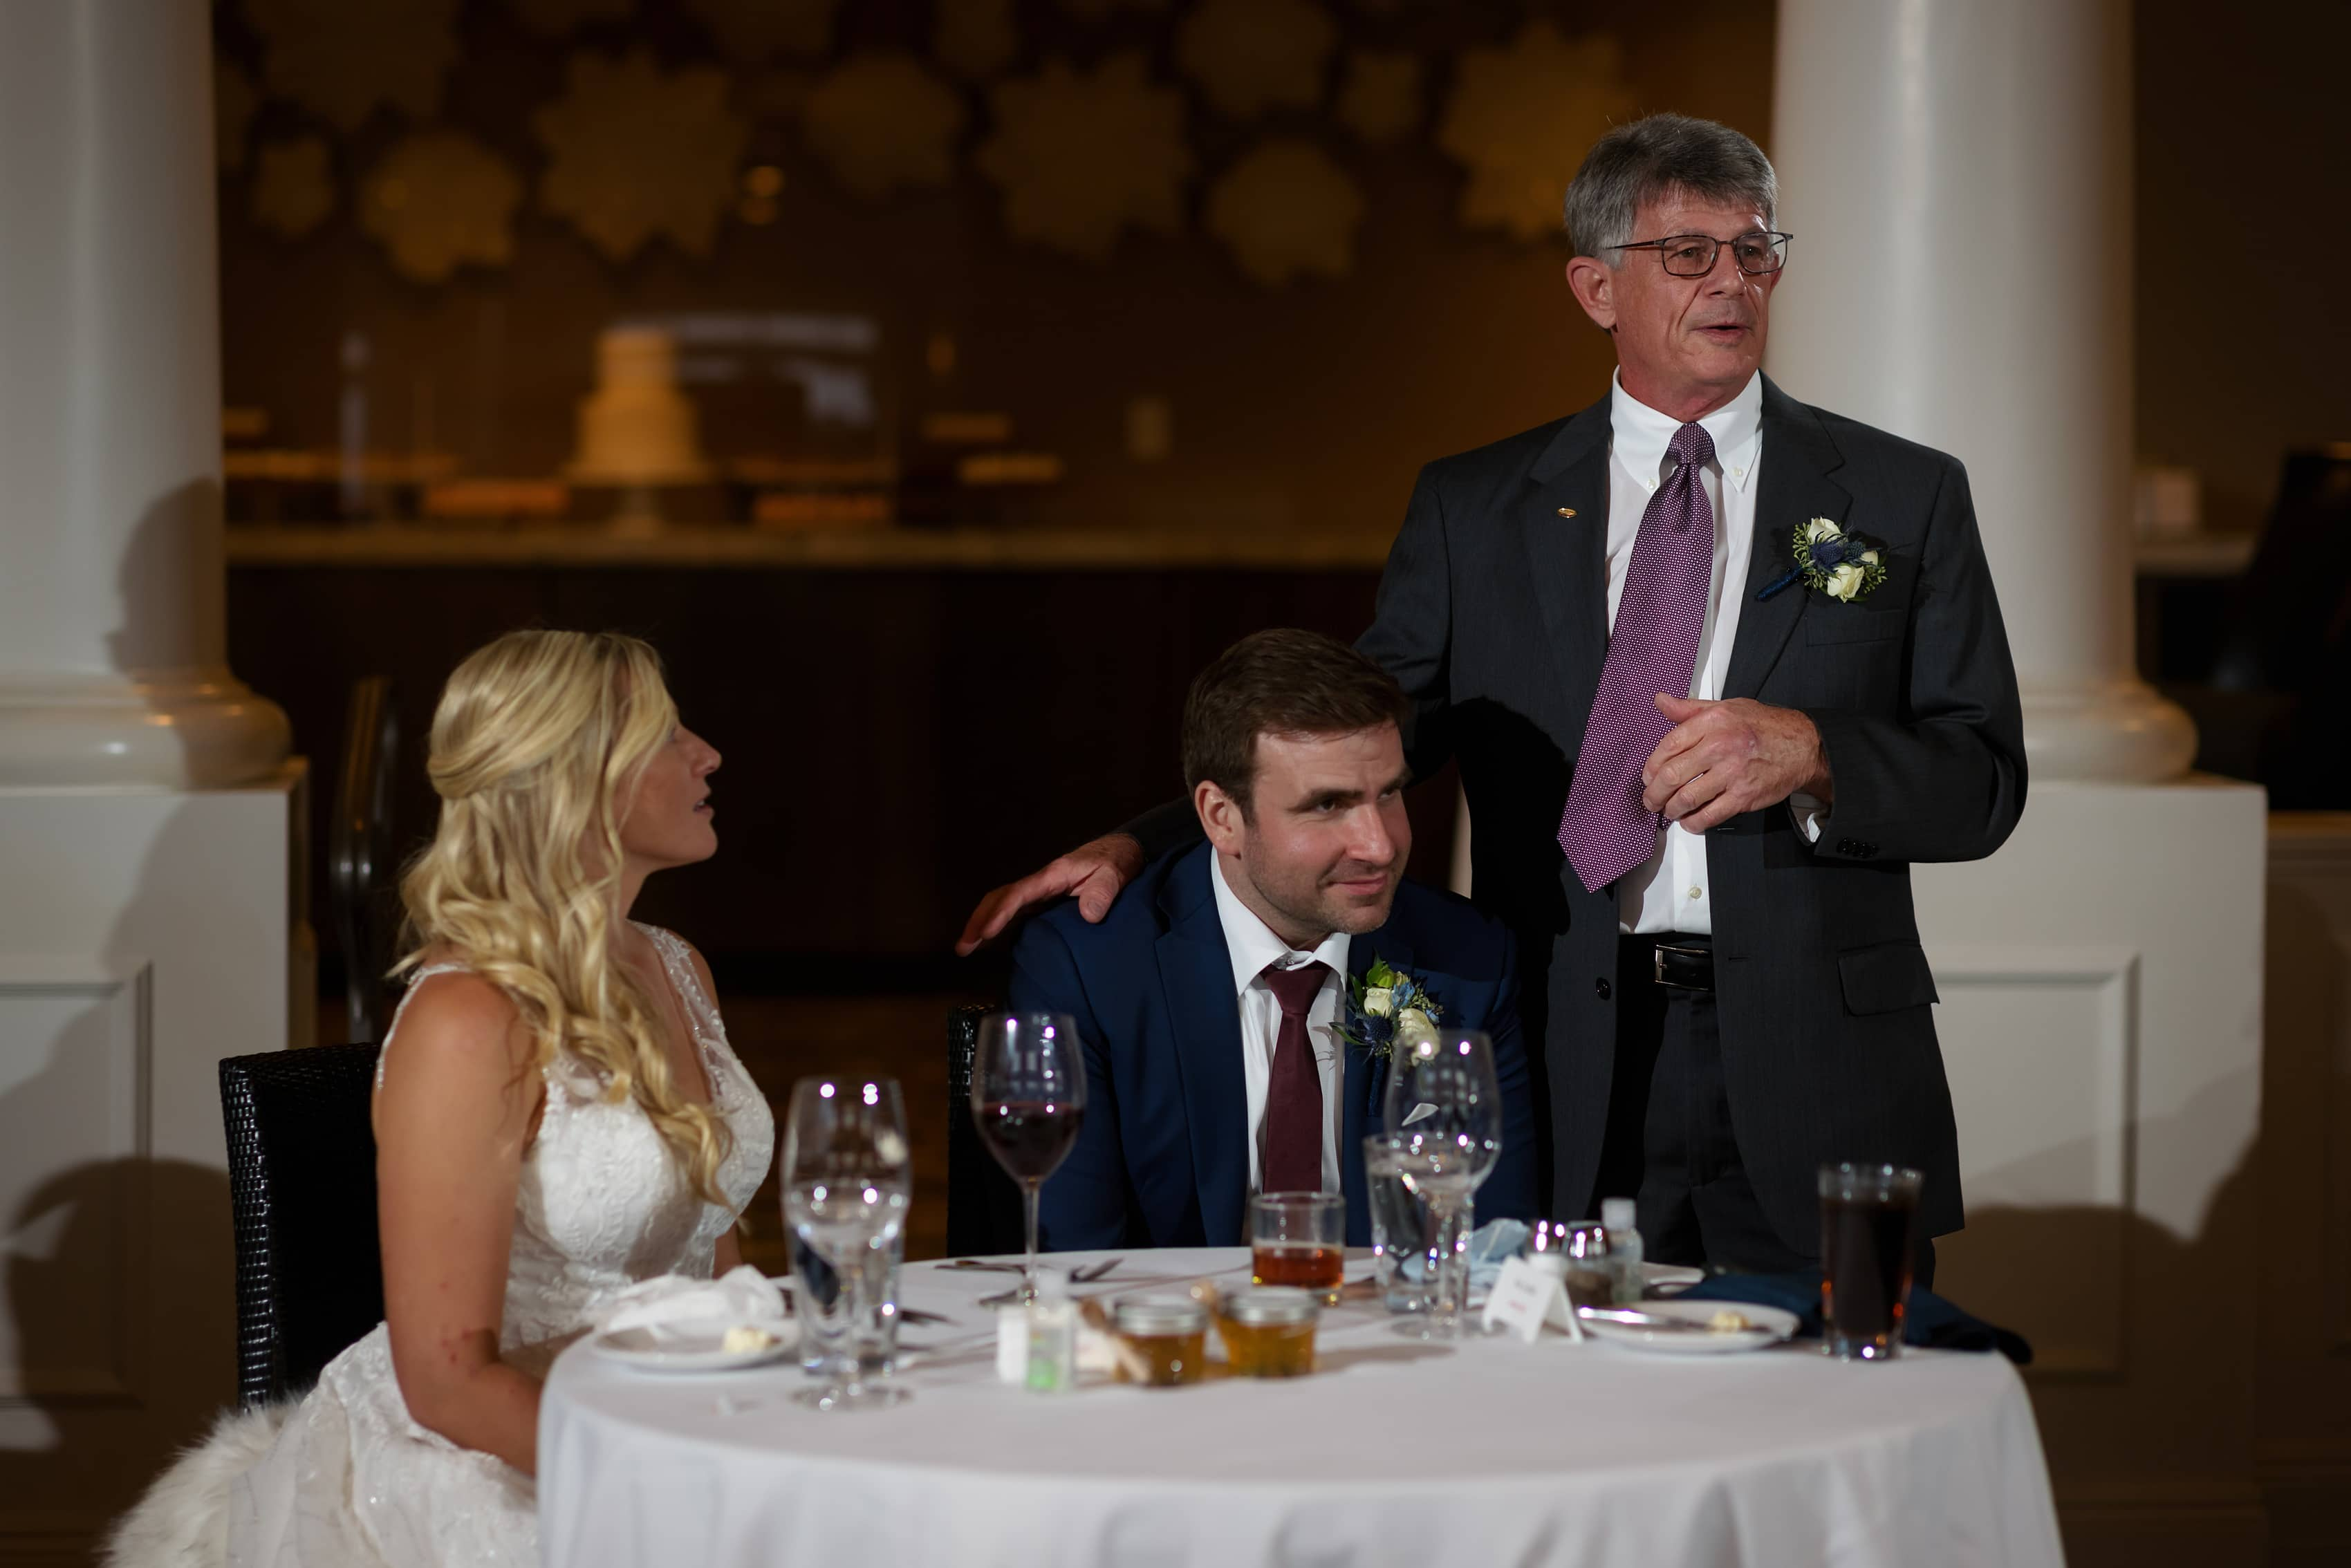 Bride's father gives toast during wedding reception at Bay Harbor Inn in Petoskey, Michigan